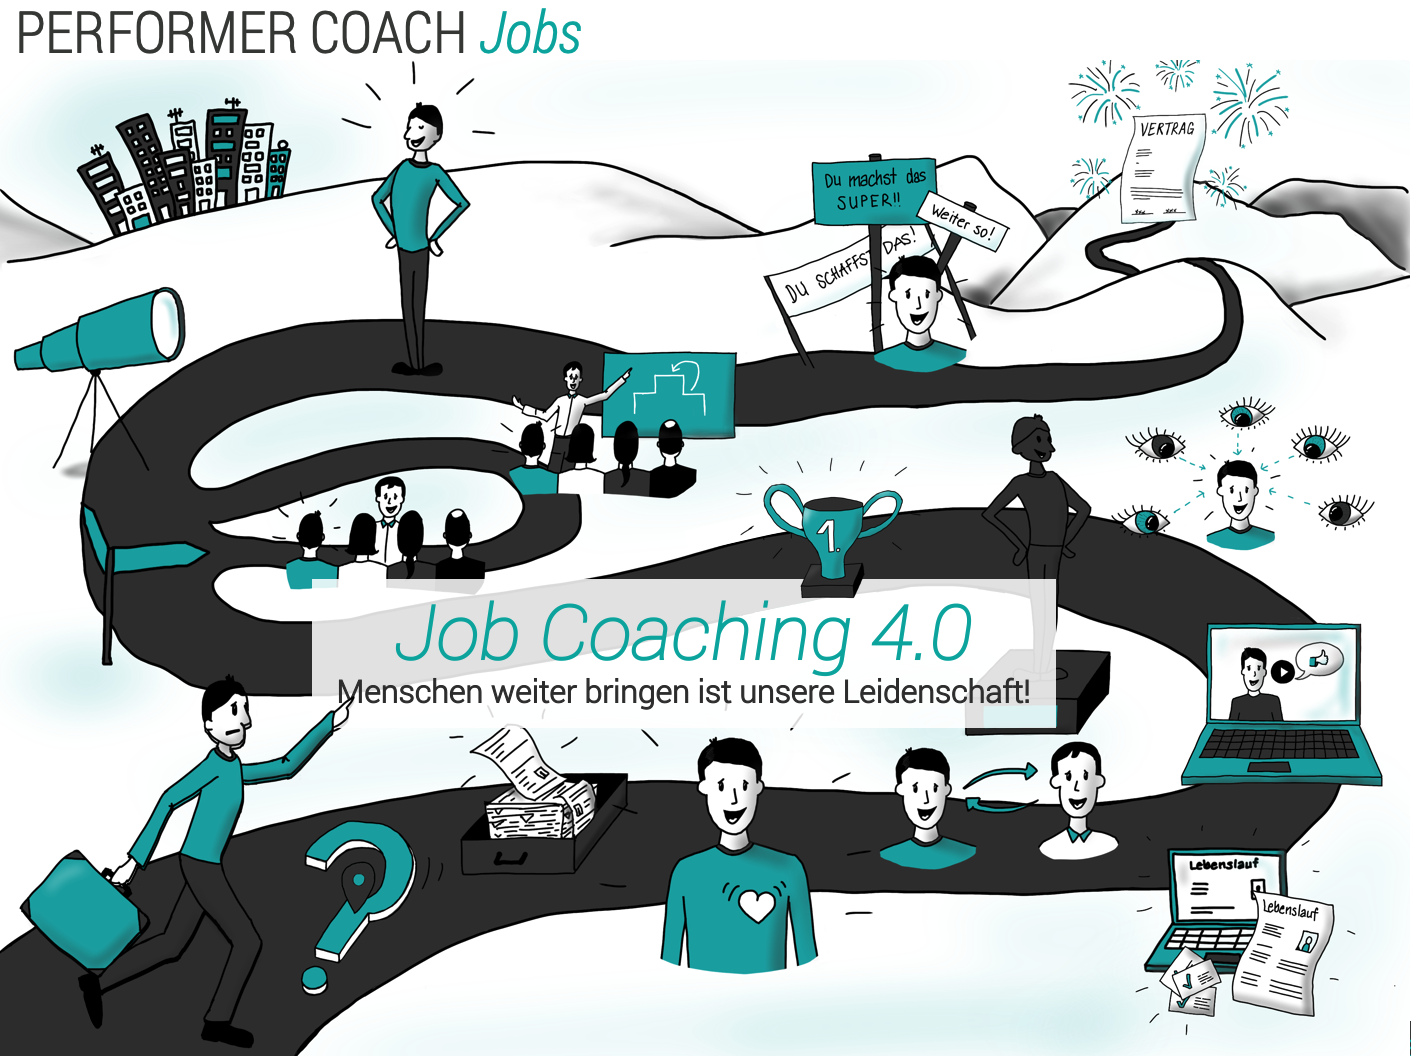 Performer Coach Jobs 4-0